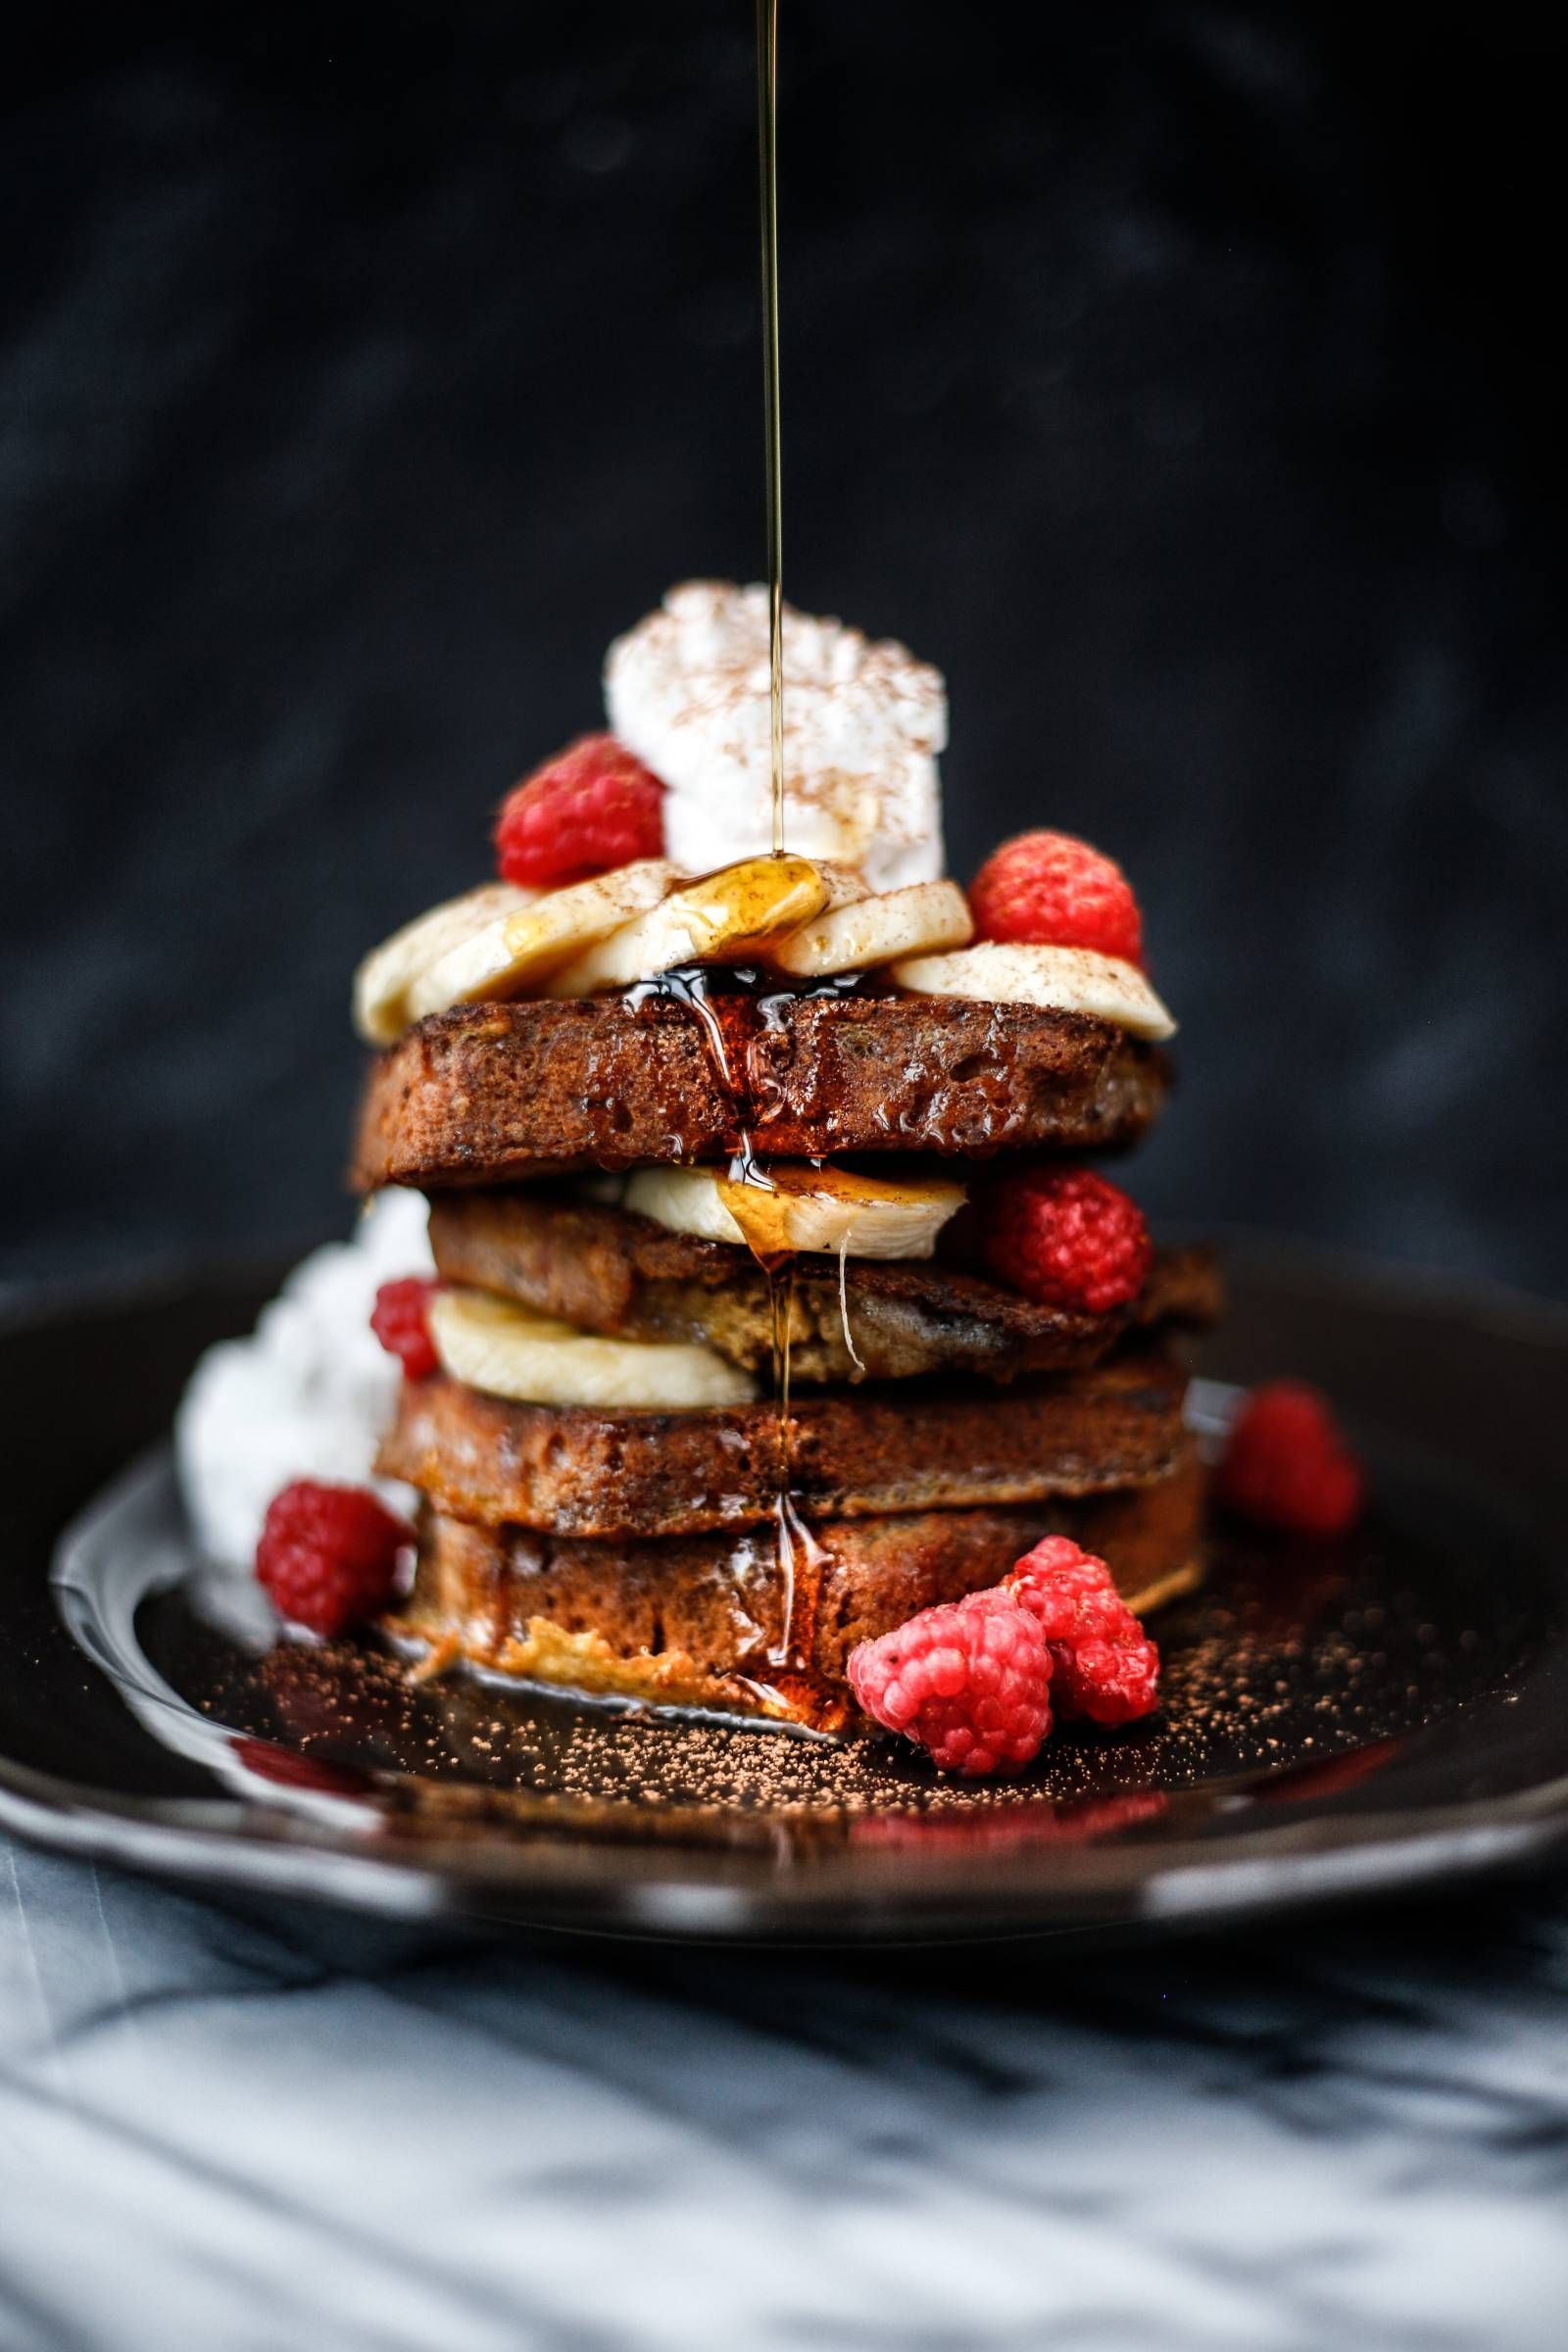 Paleo Banana Bread French Toast Primal Gourmet Food Photography Food Staying Food